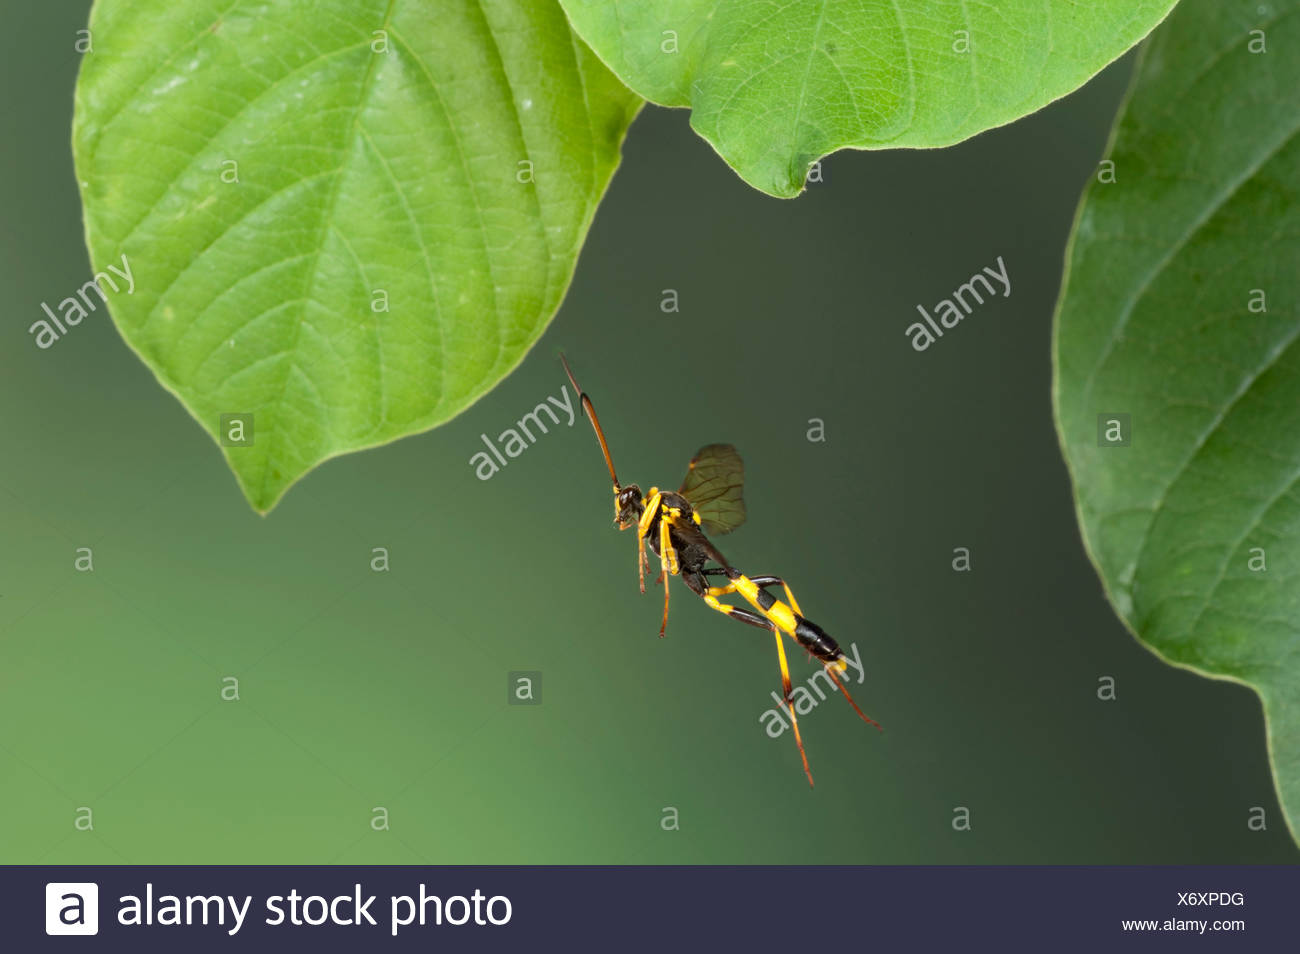 Field Digger Wasp Mellinus arvensis In flight free flying High Speed Photographic Technique - Stock Image